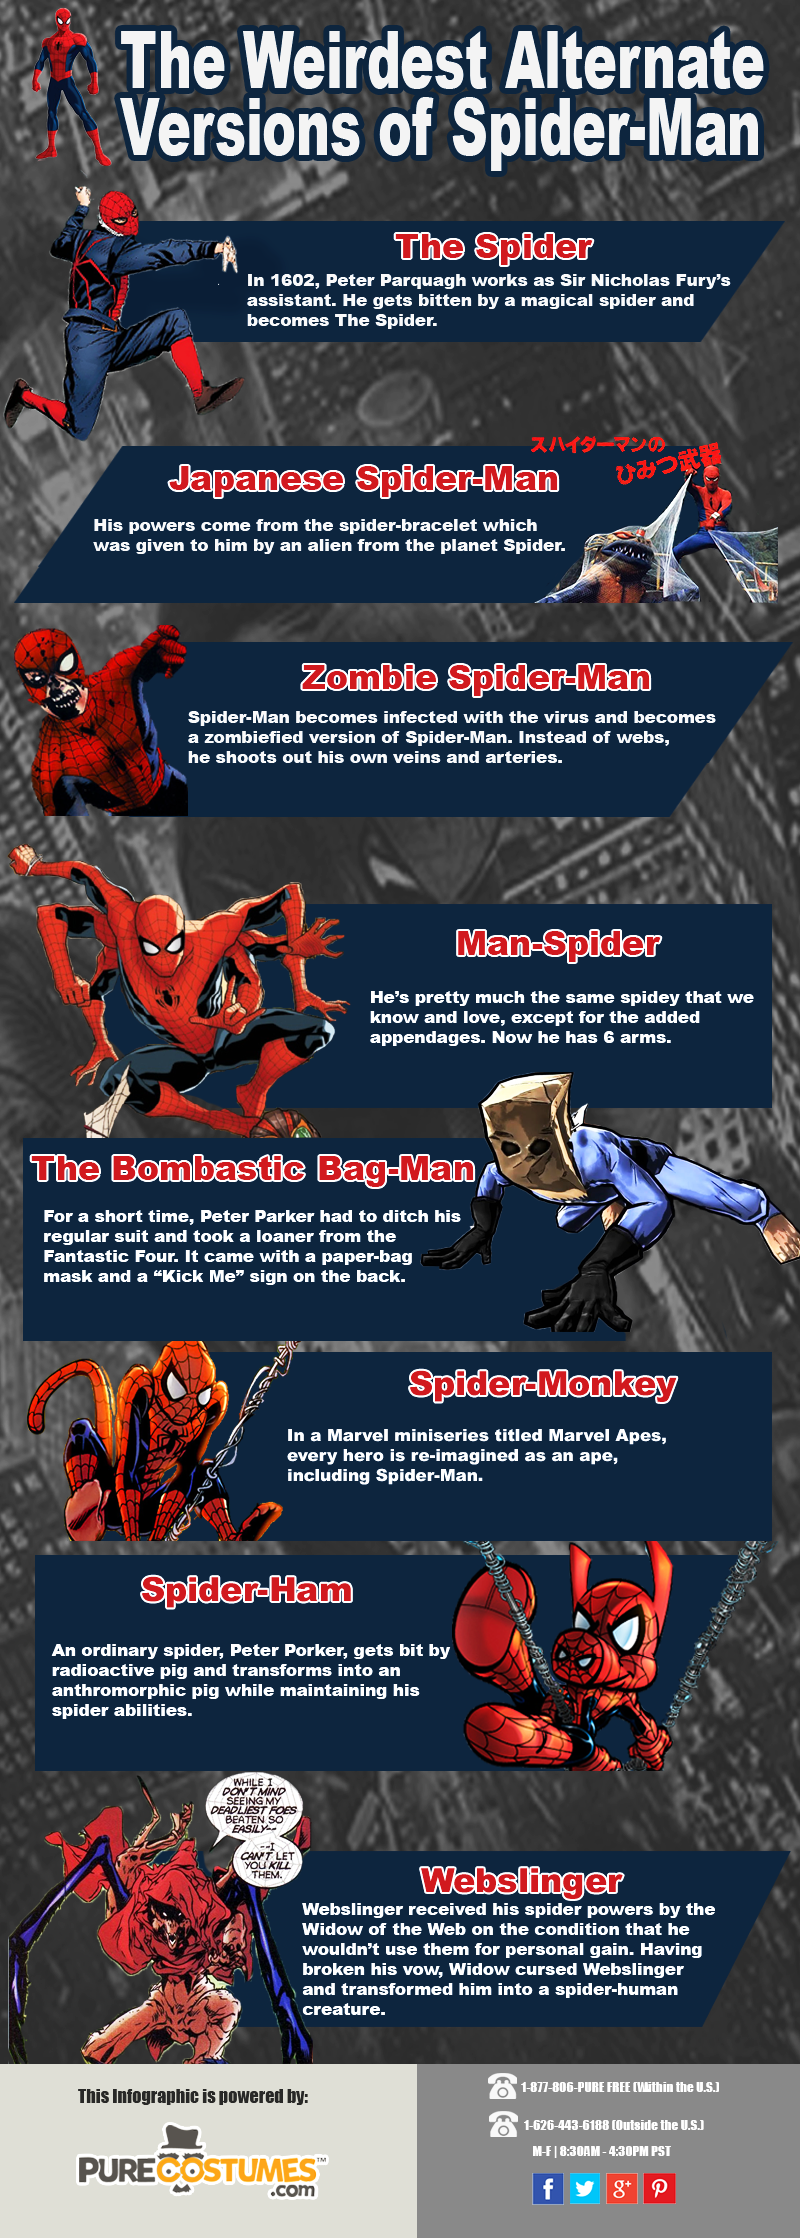 Weirdest Alternate Versions of Spider-Man